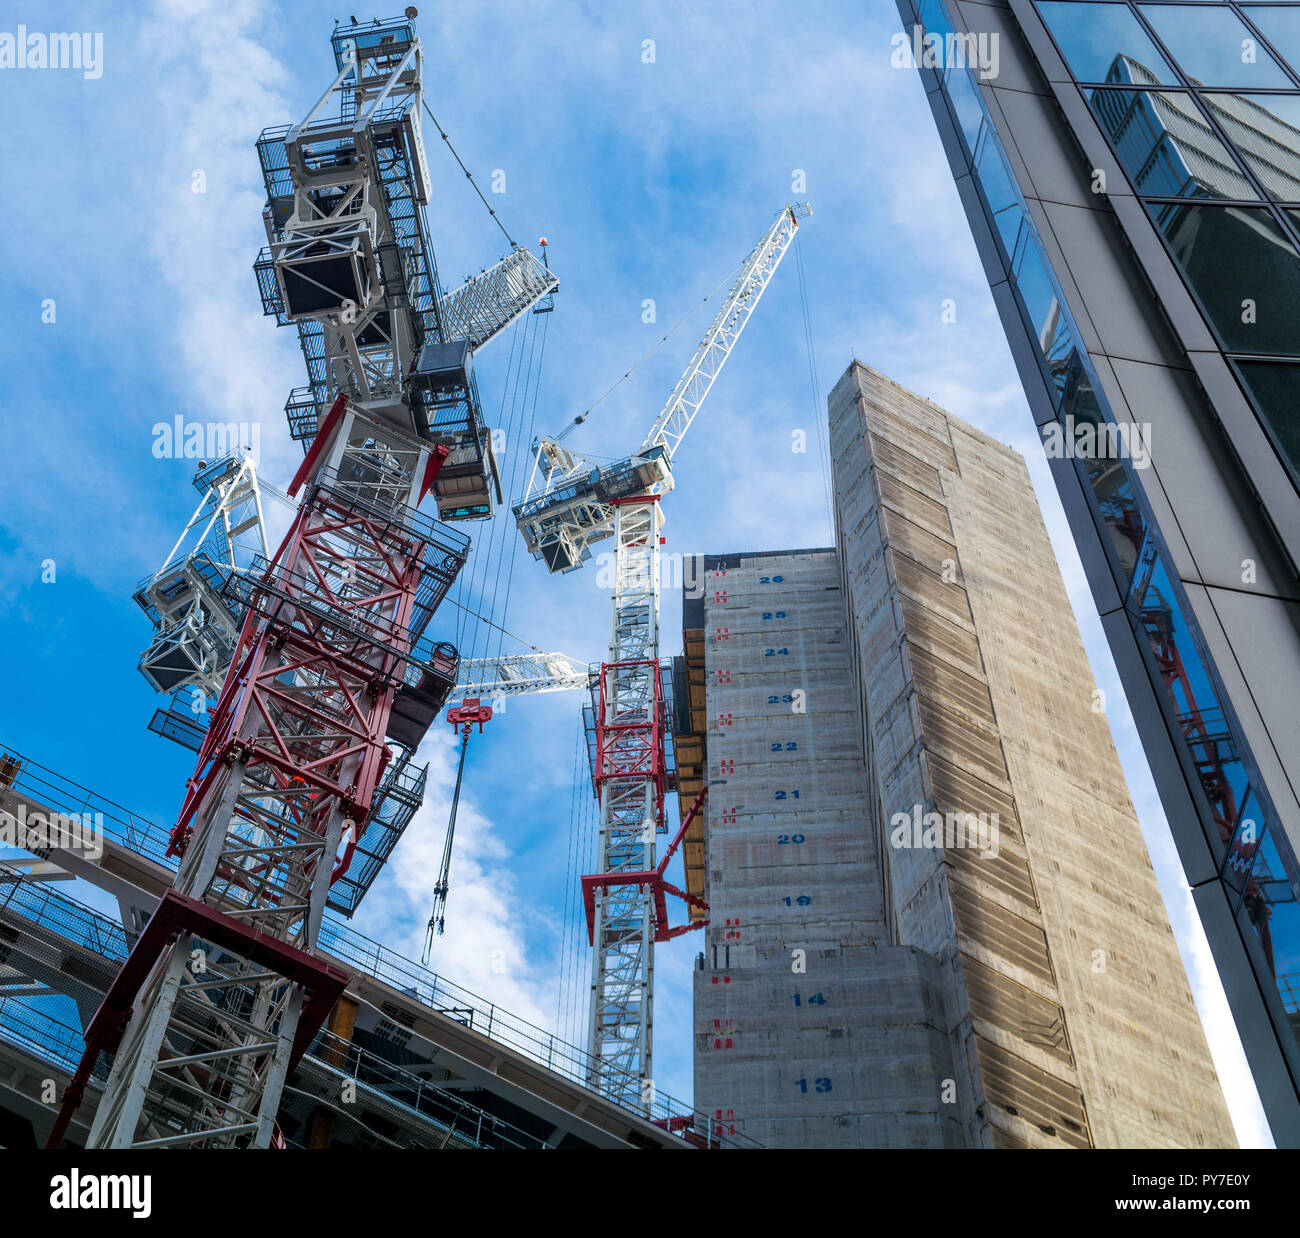 Three tower cranes at construction site in the City of London against a blue sky - Stock Image